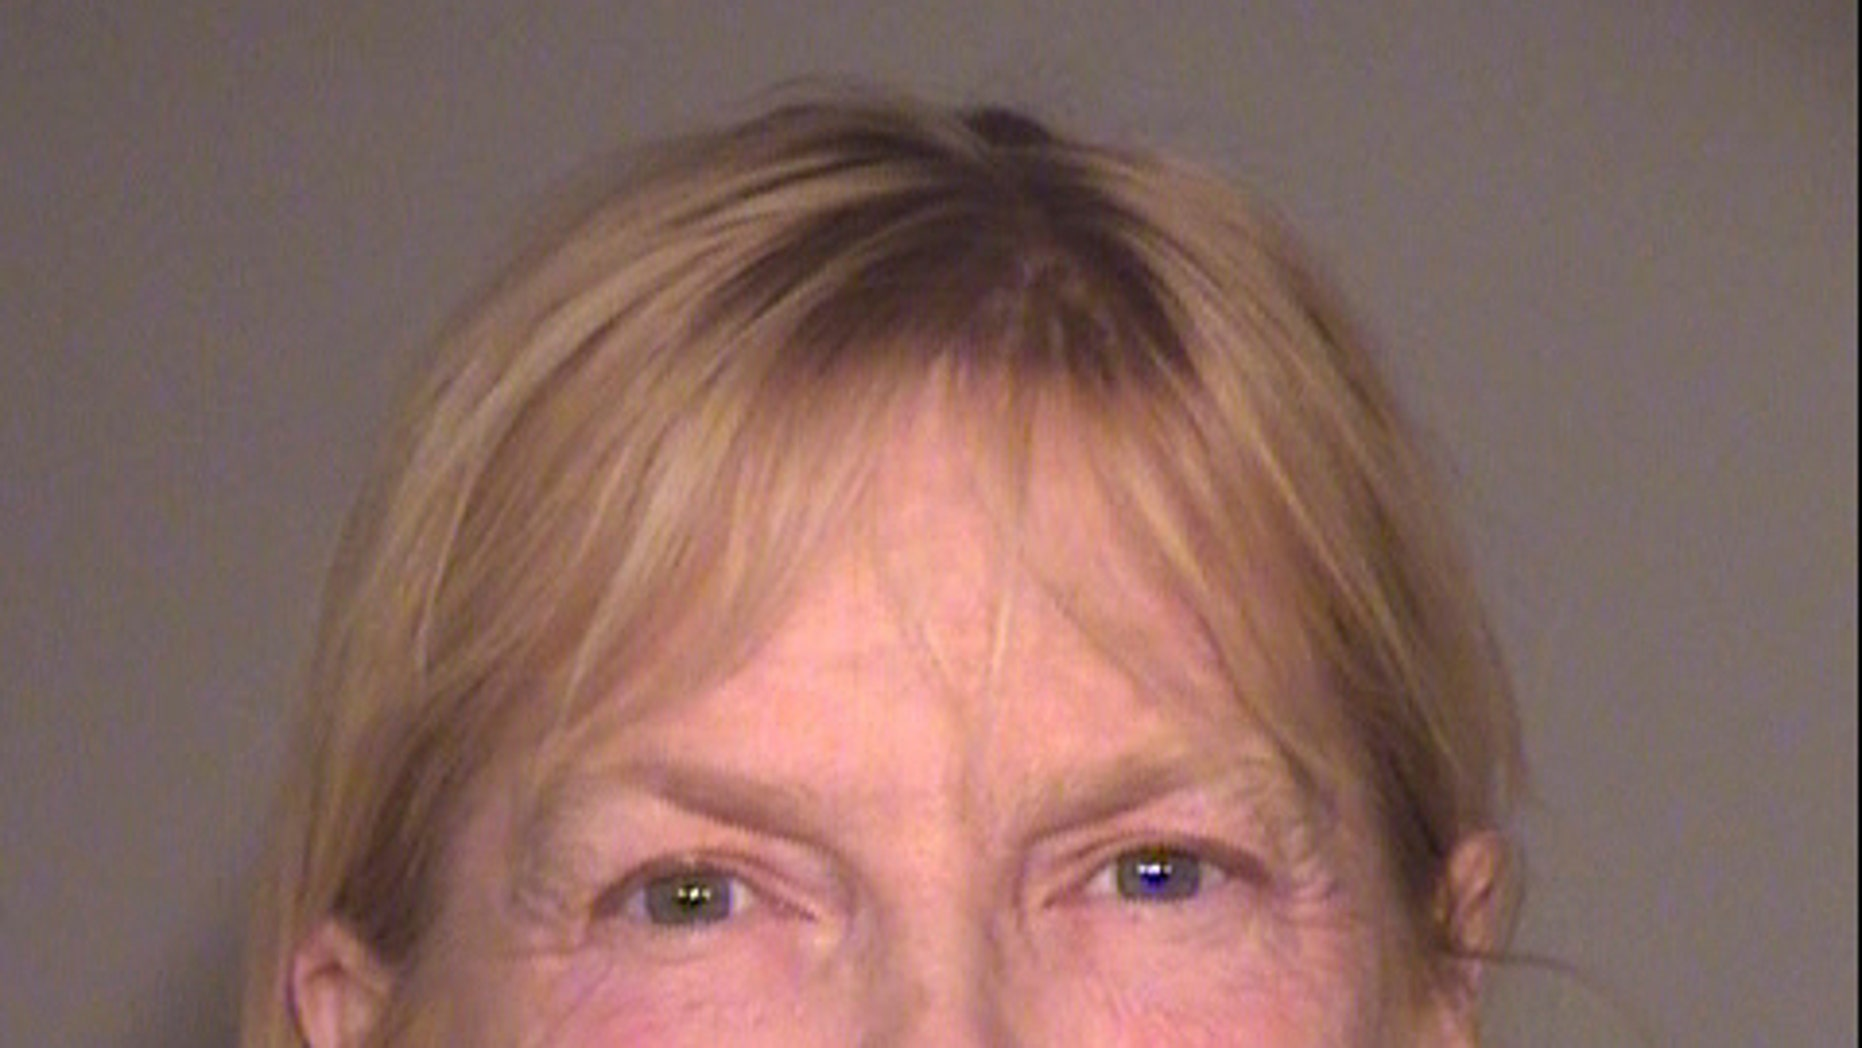 This undated booking photo provided by the Ventura County Sheriff's Office shows Catherine Ann Vandermaesen, of Ojai, Calif. Authorities say the Southern California woman is in custody after deputies discovered her 96-year-old father living in a home stinking of feces and filled with up to 700 rats. The Ventura County Sheriff's Office says Tuesday, March 19, 2019, that Vandermaesen was arrested on suspicion of elder abuse and animal neglect. (Ventura County Sheriff's Office via AP)